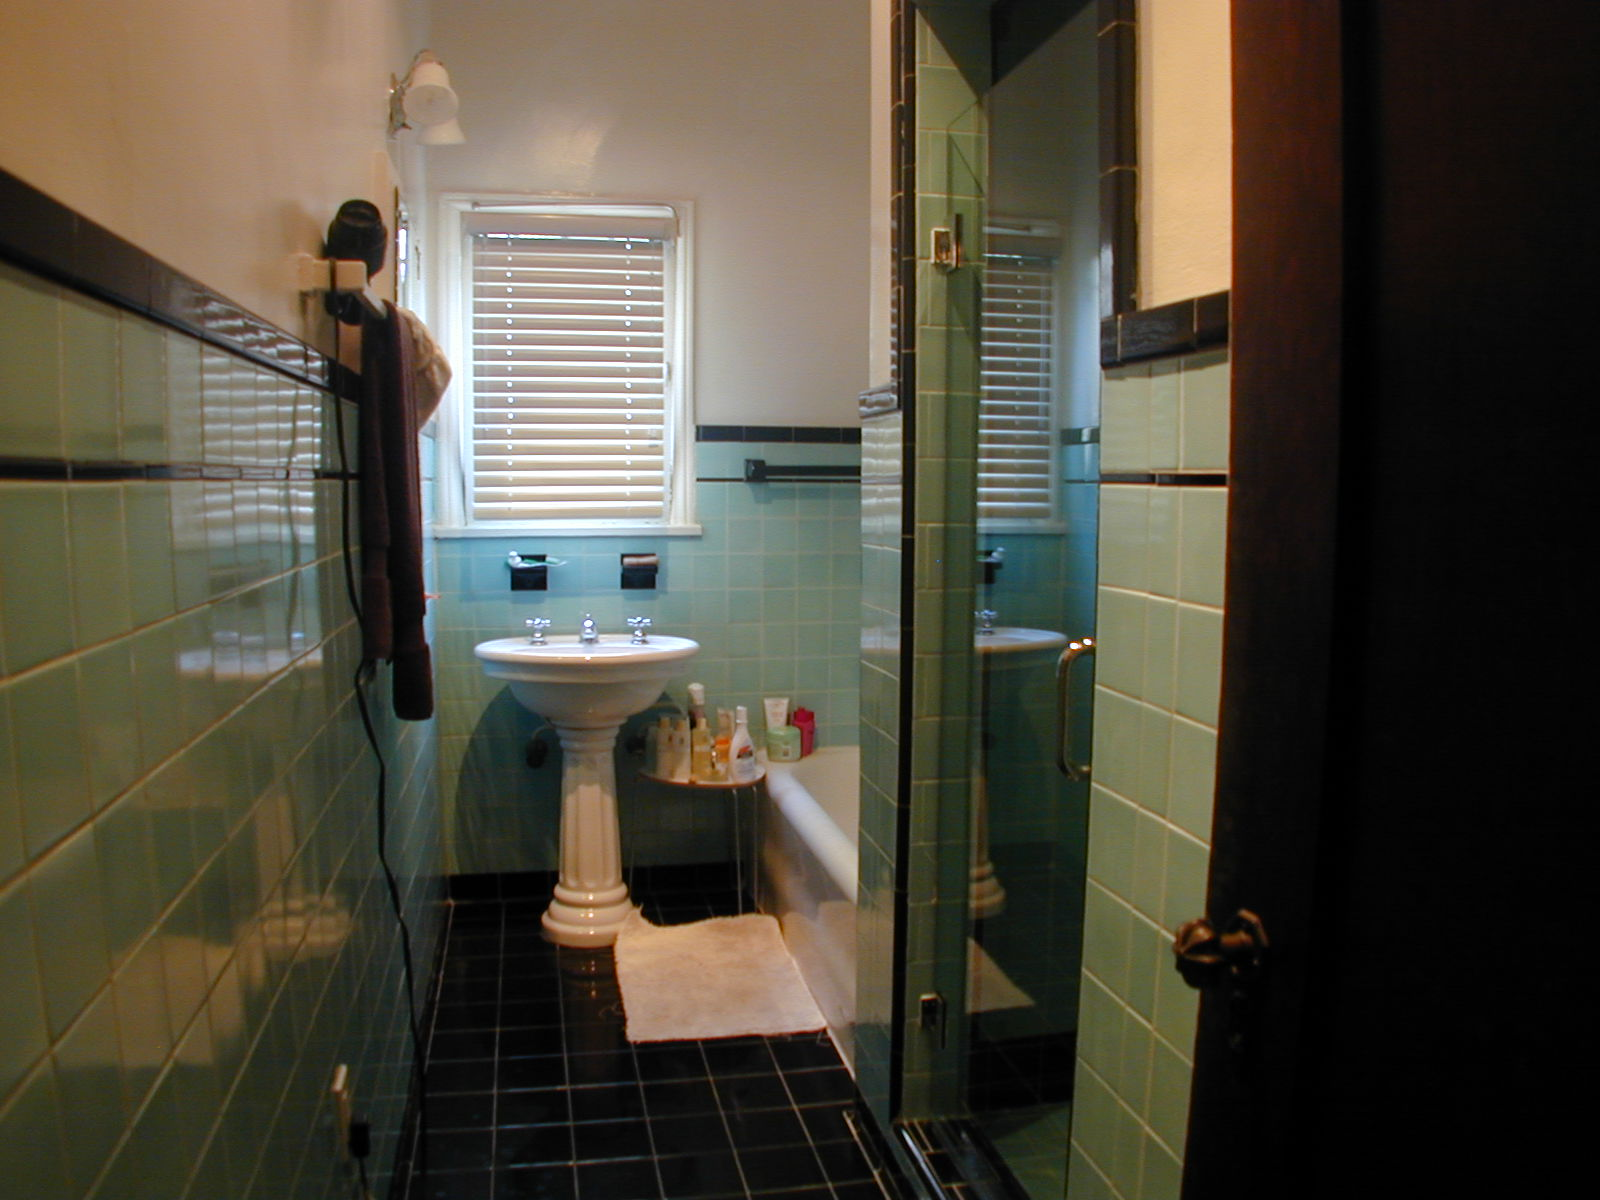 bathroom tiles are deco yellow and black, same layout